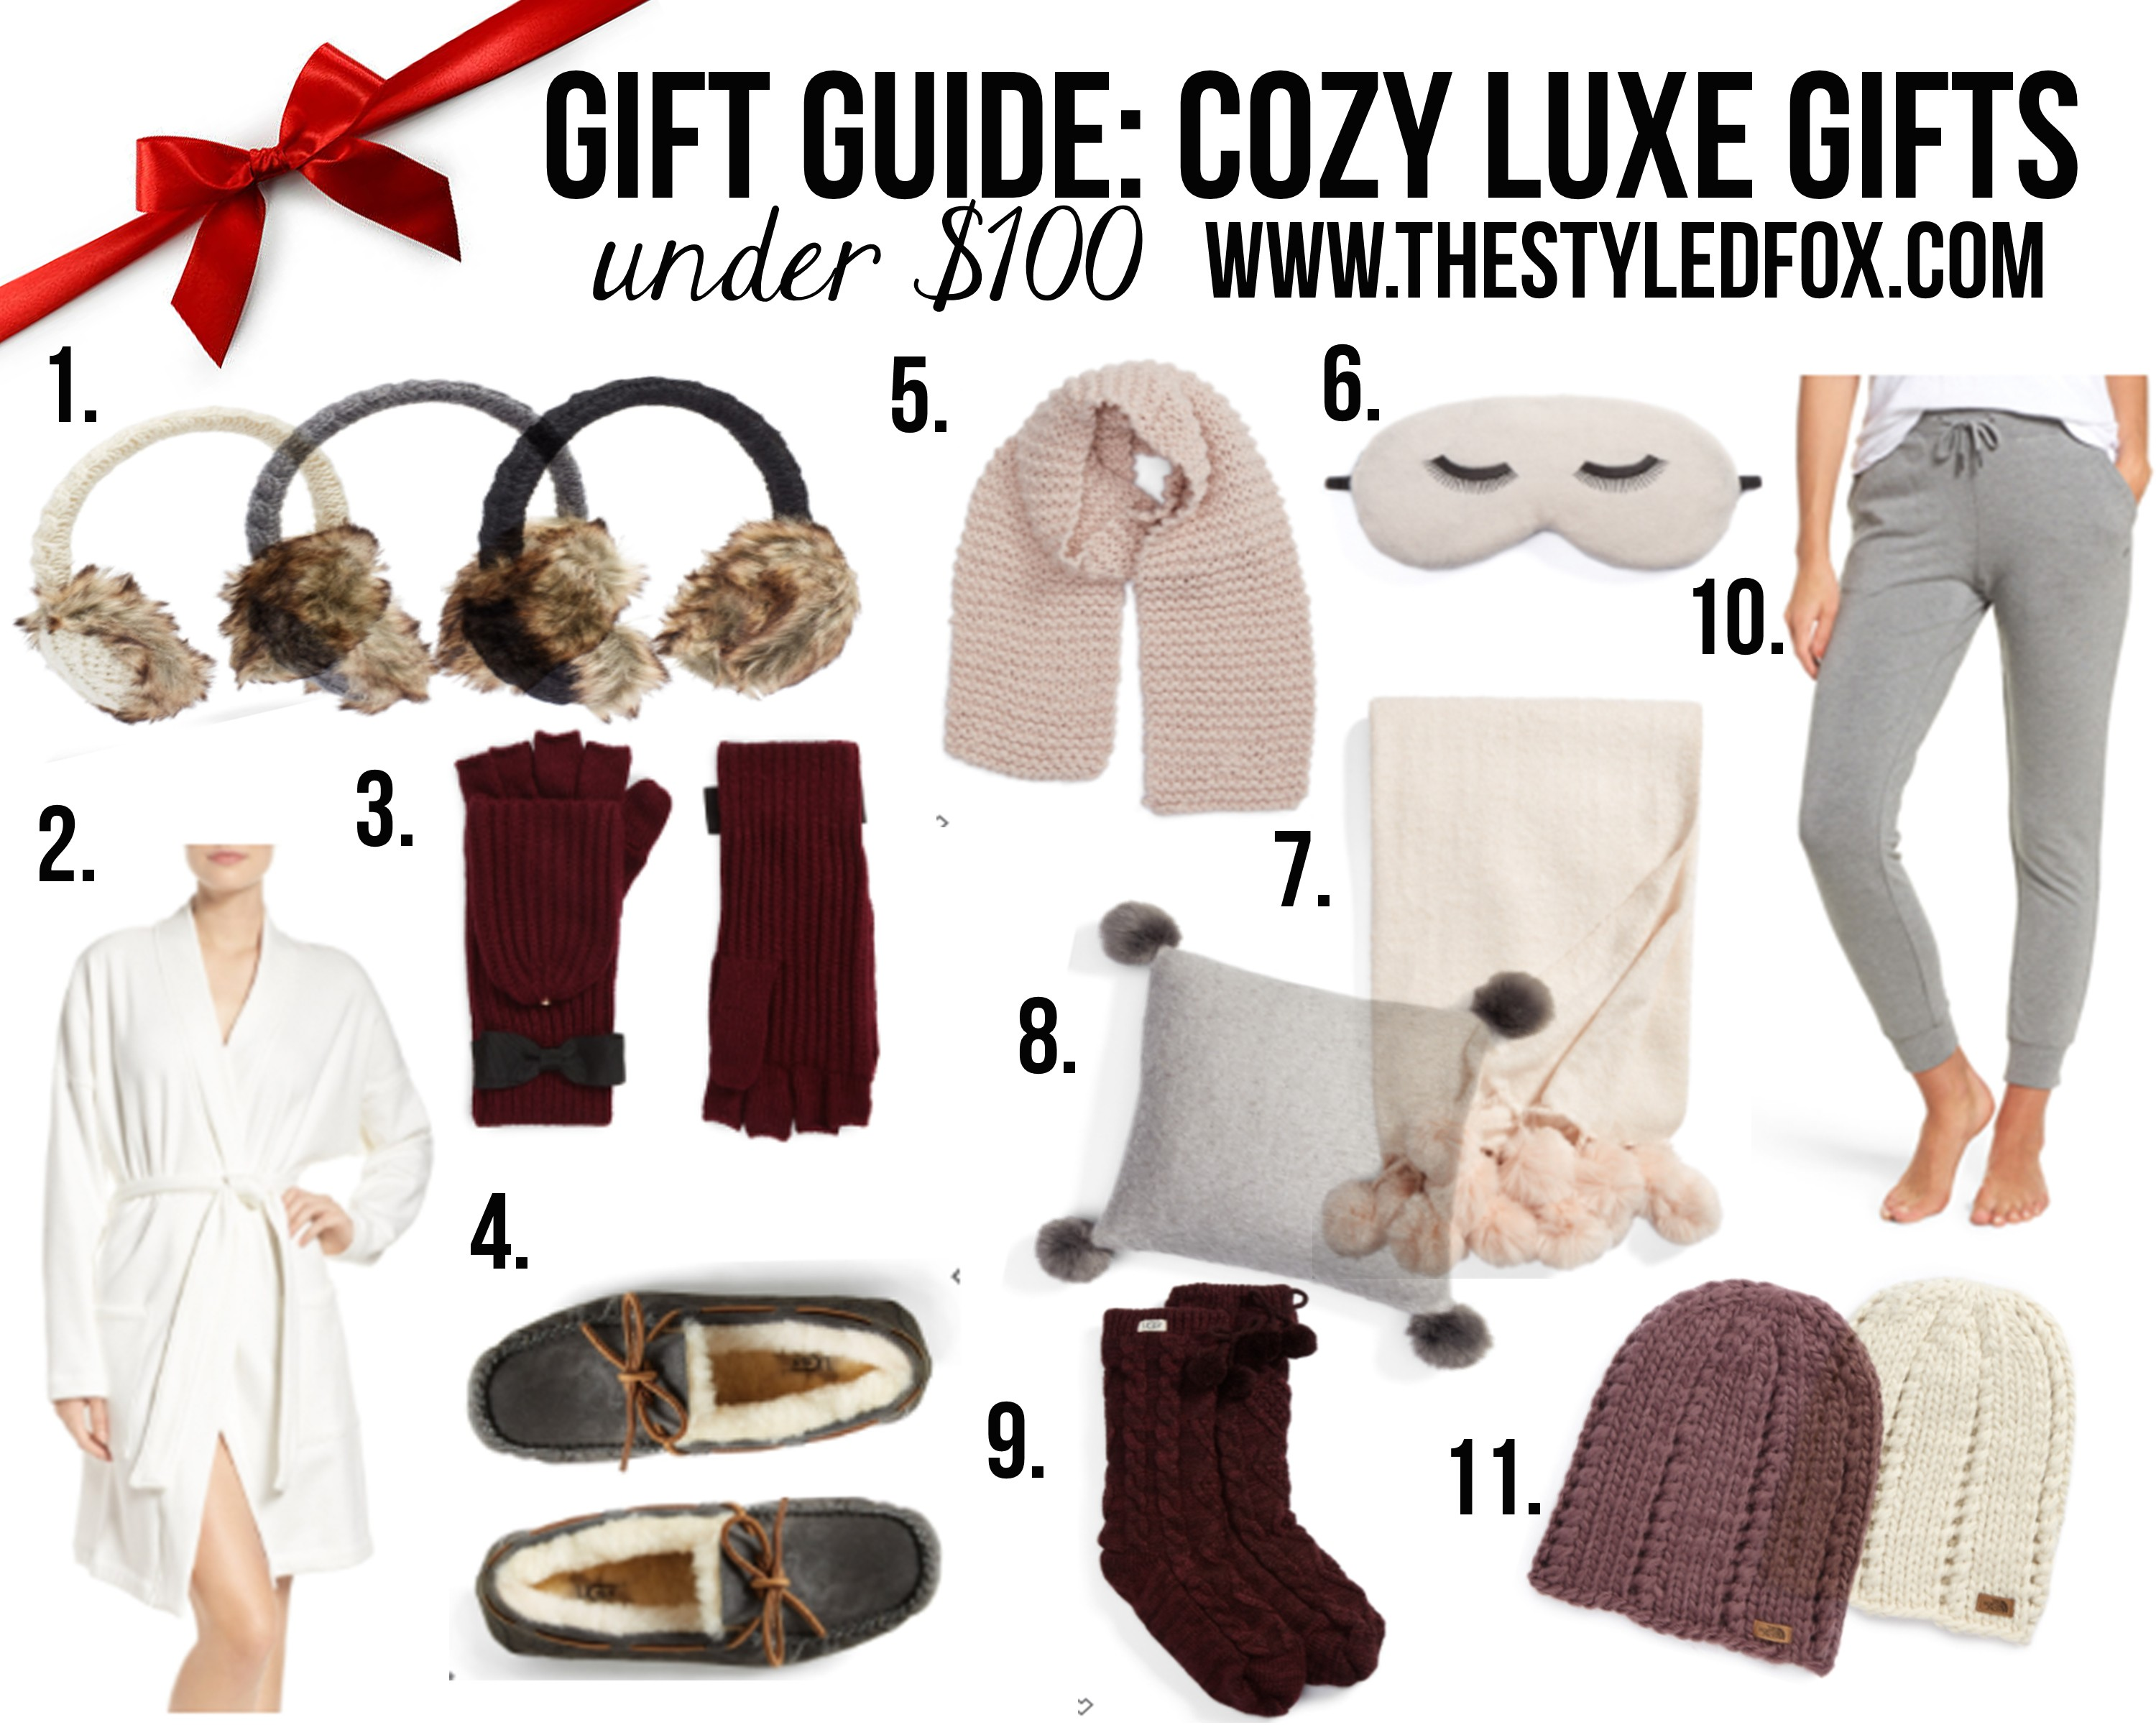 e5f0d89b716 11 COZY GIFTS + BLACK FRIDAY SALES!